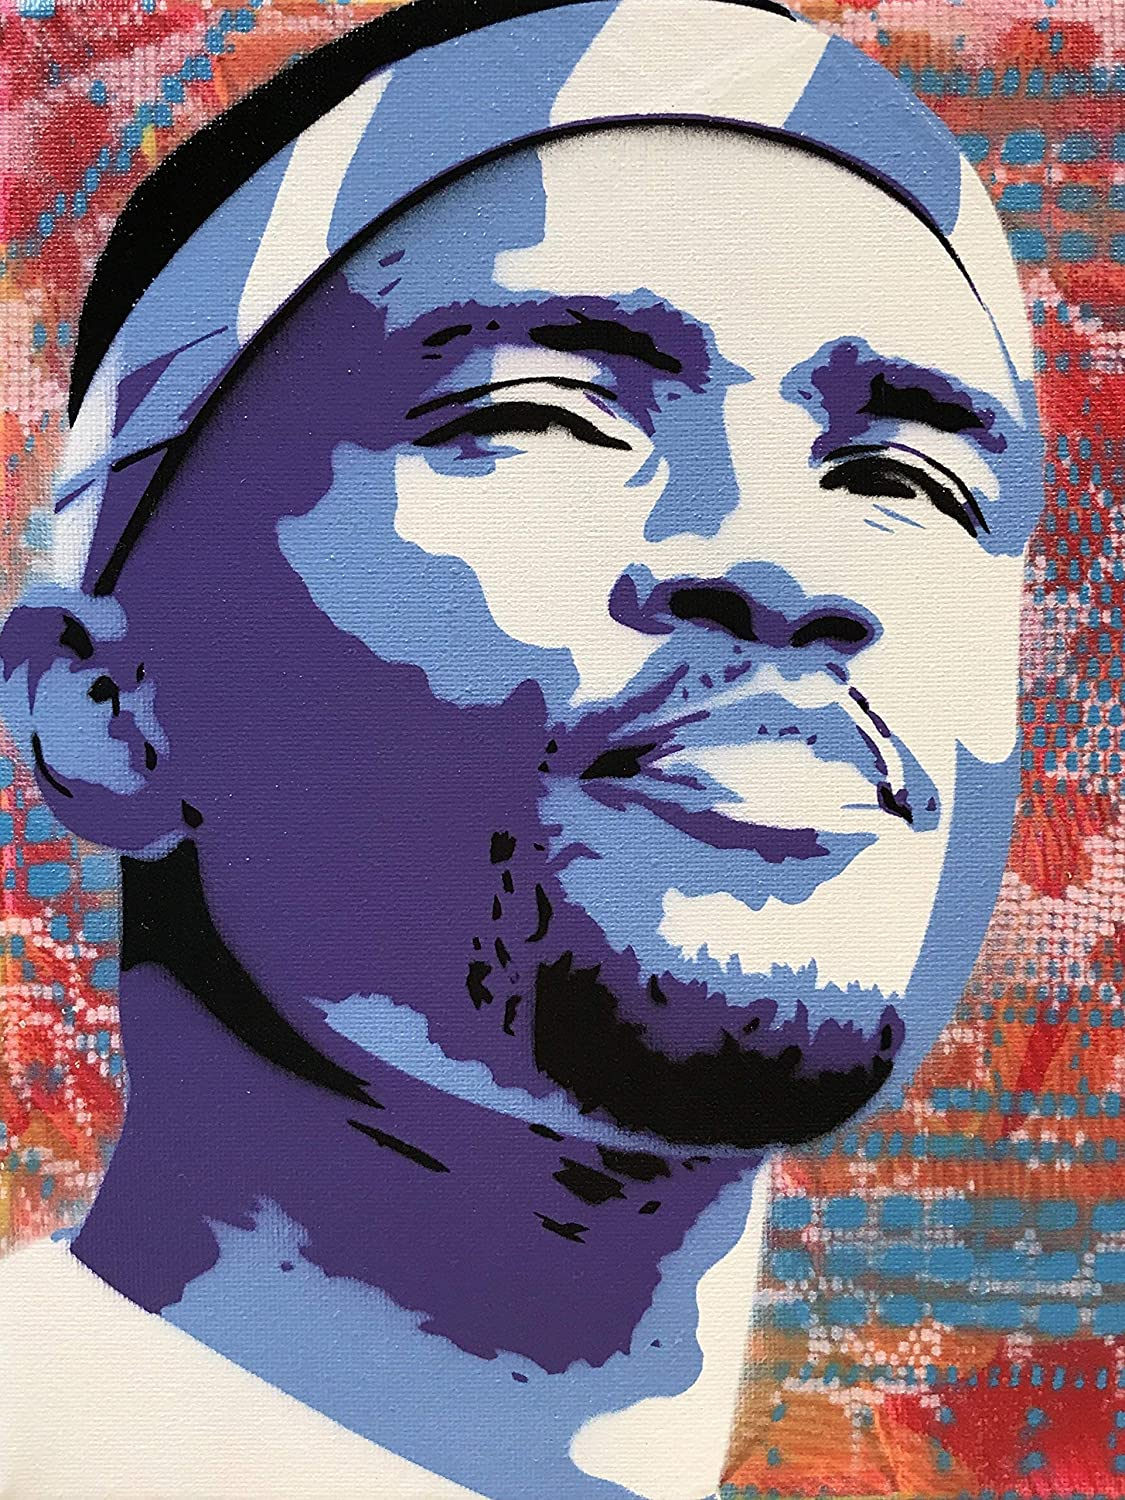 Frank Ocean We OFFer at cheap prices 1 year warranty Art Print Inches 8x10